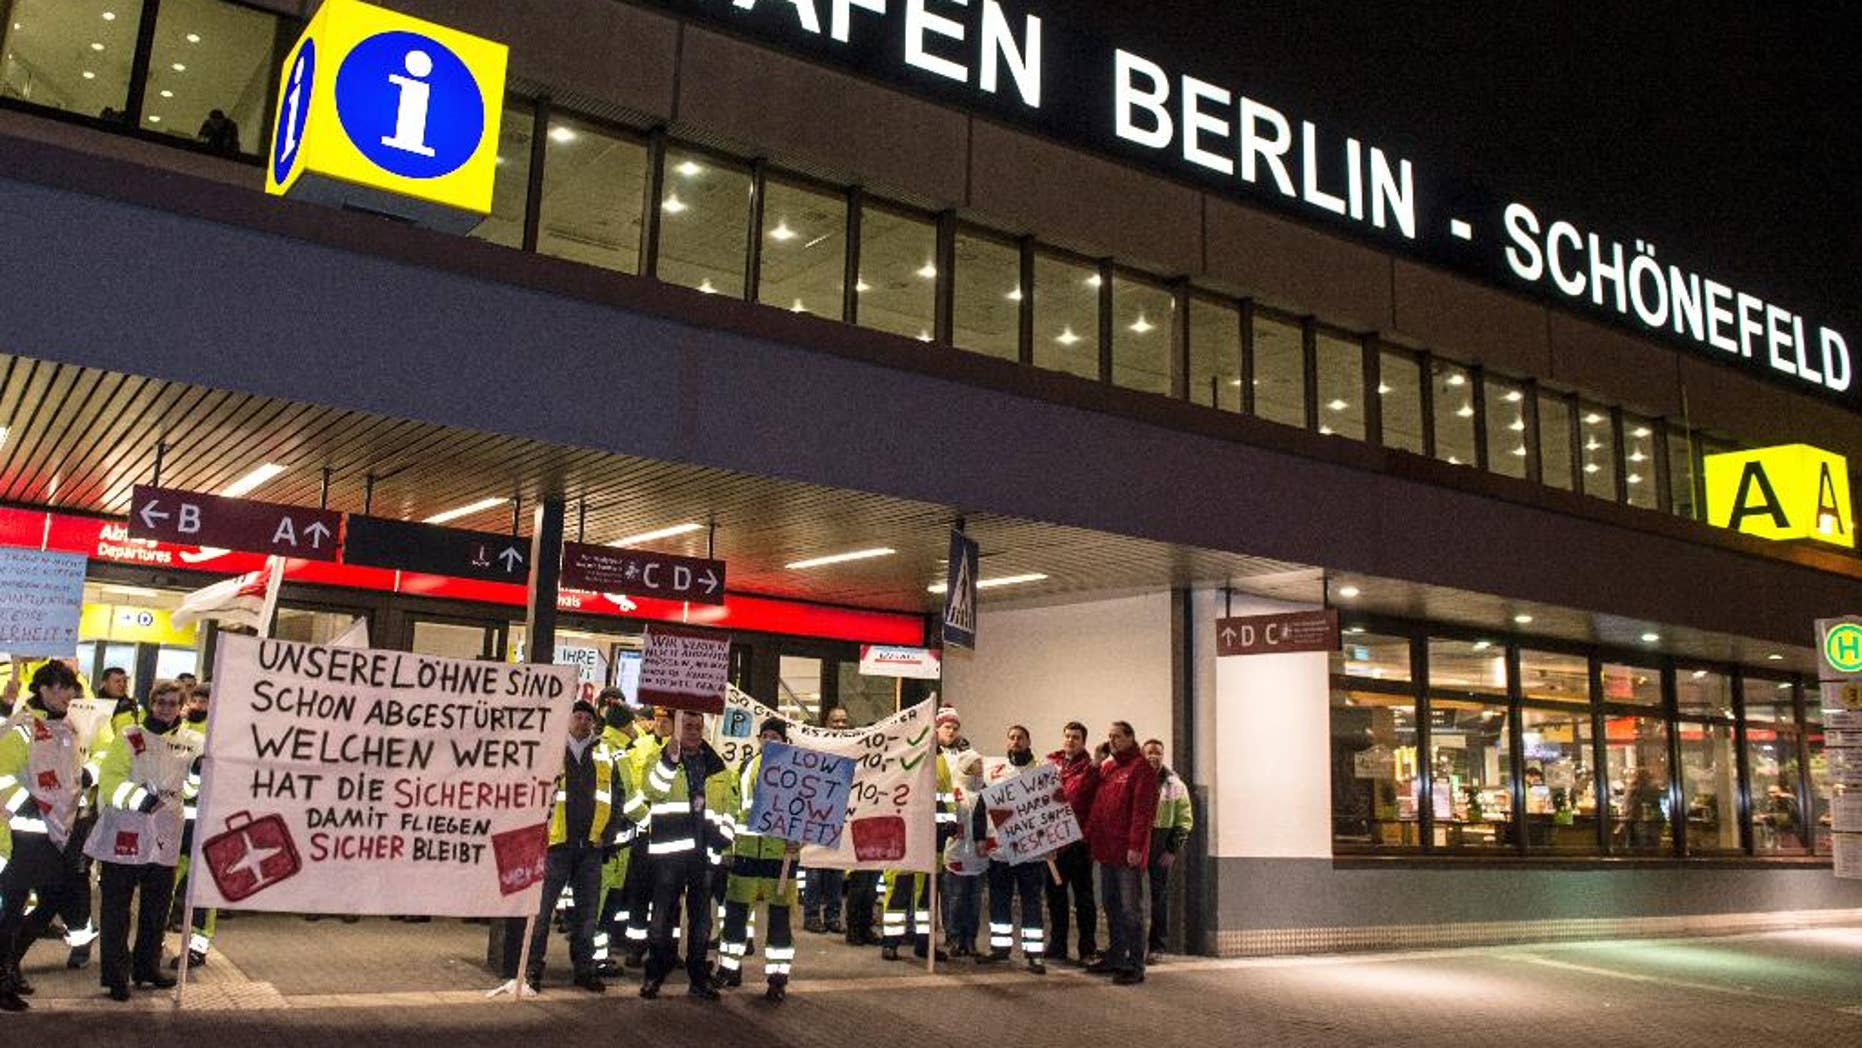 FILE - In this Feb. 8, 2017 file photo, members of the airport ground staff stand at Schoenefeld airport in Berlin, during a warning strike. A union representing ground staff has called on its members to go on strike at Berlin's two airports and warned the walkouts might lead to delays and perhaps flight cancellations. The ver.di union says the strikes would begin Friday at 4 a.m. (0300 GMT) and end Saturday at 5 a.m. (0400 GMT) at the German capital's Tegel and Schoenefeld airports. (Paul Zinken/dpa via AP)